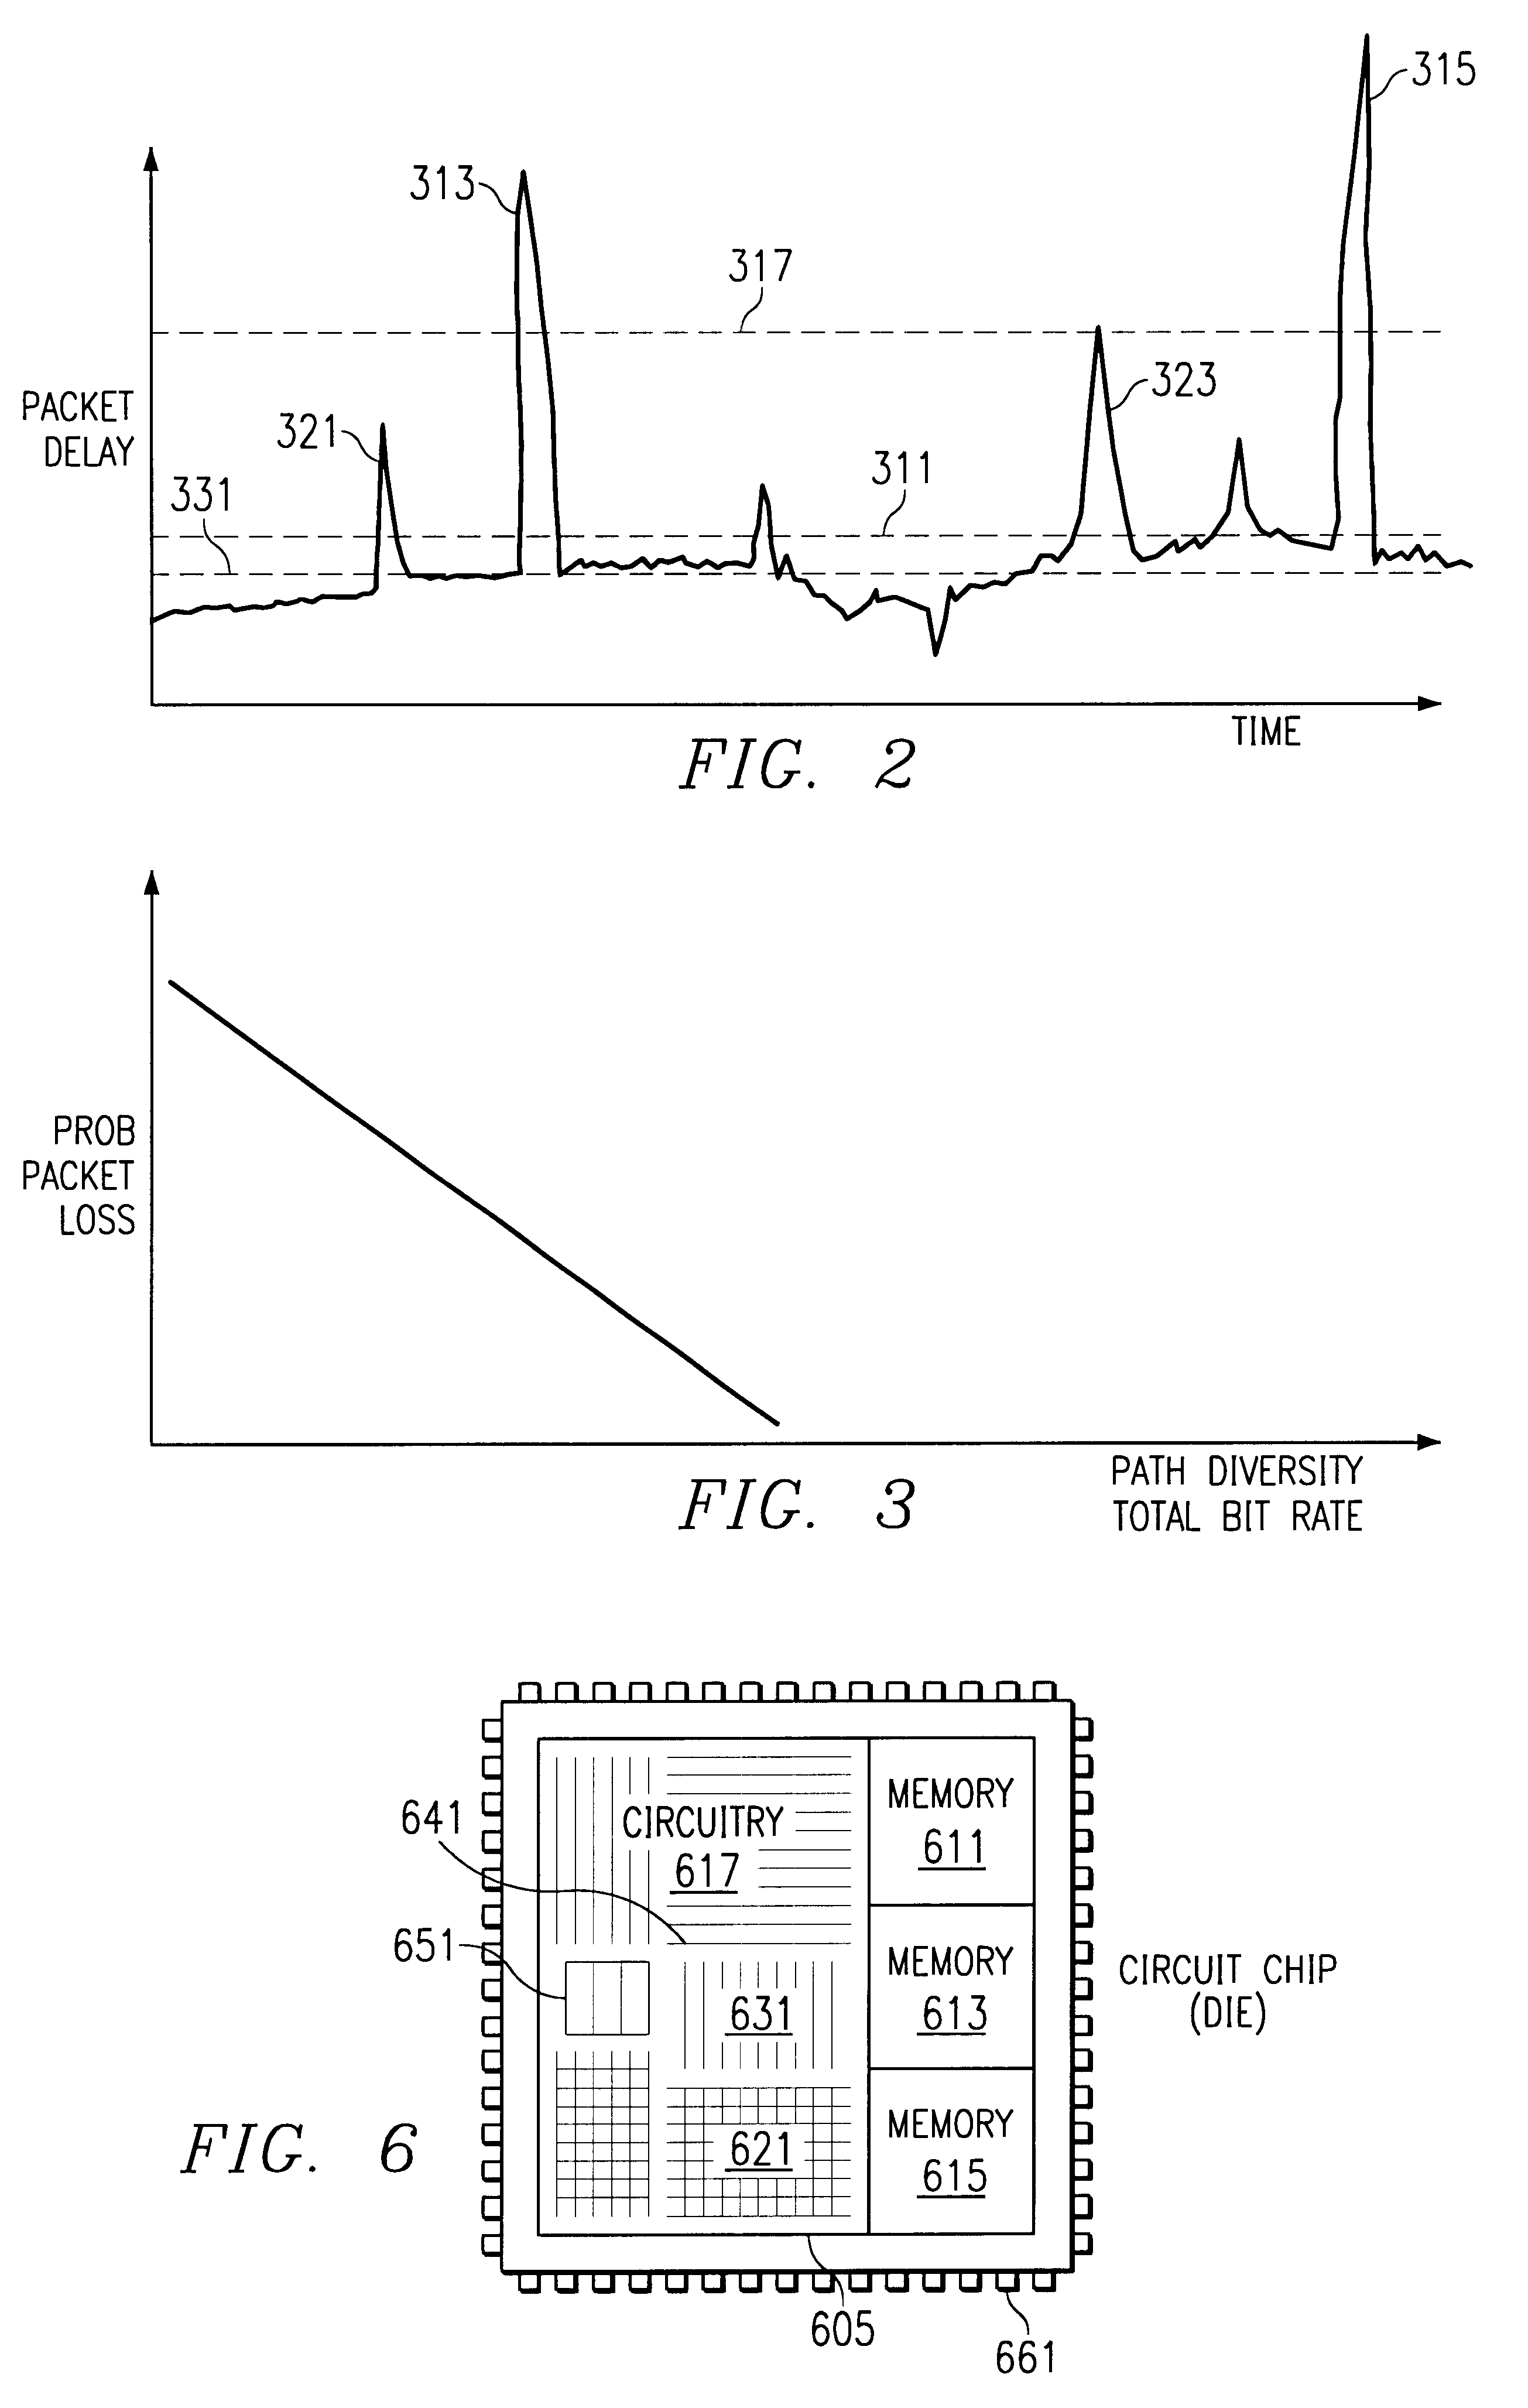 Patent Us 6496477 B1 Circuits And Microwave Power Amplifiers Known Good Die Lm Series From Images